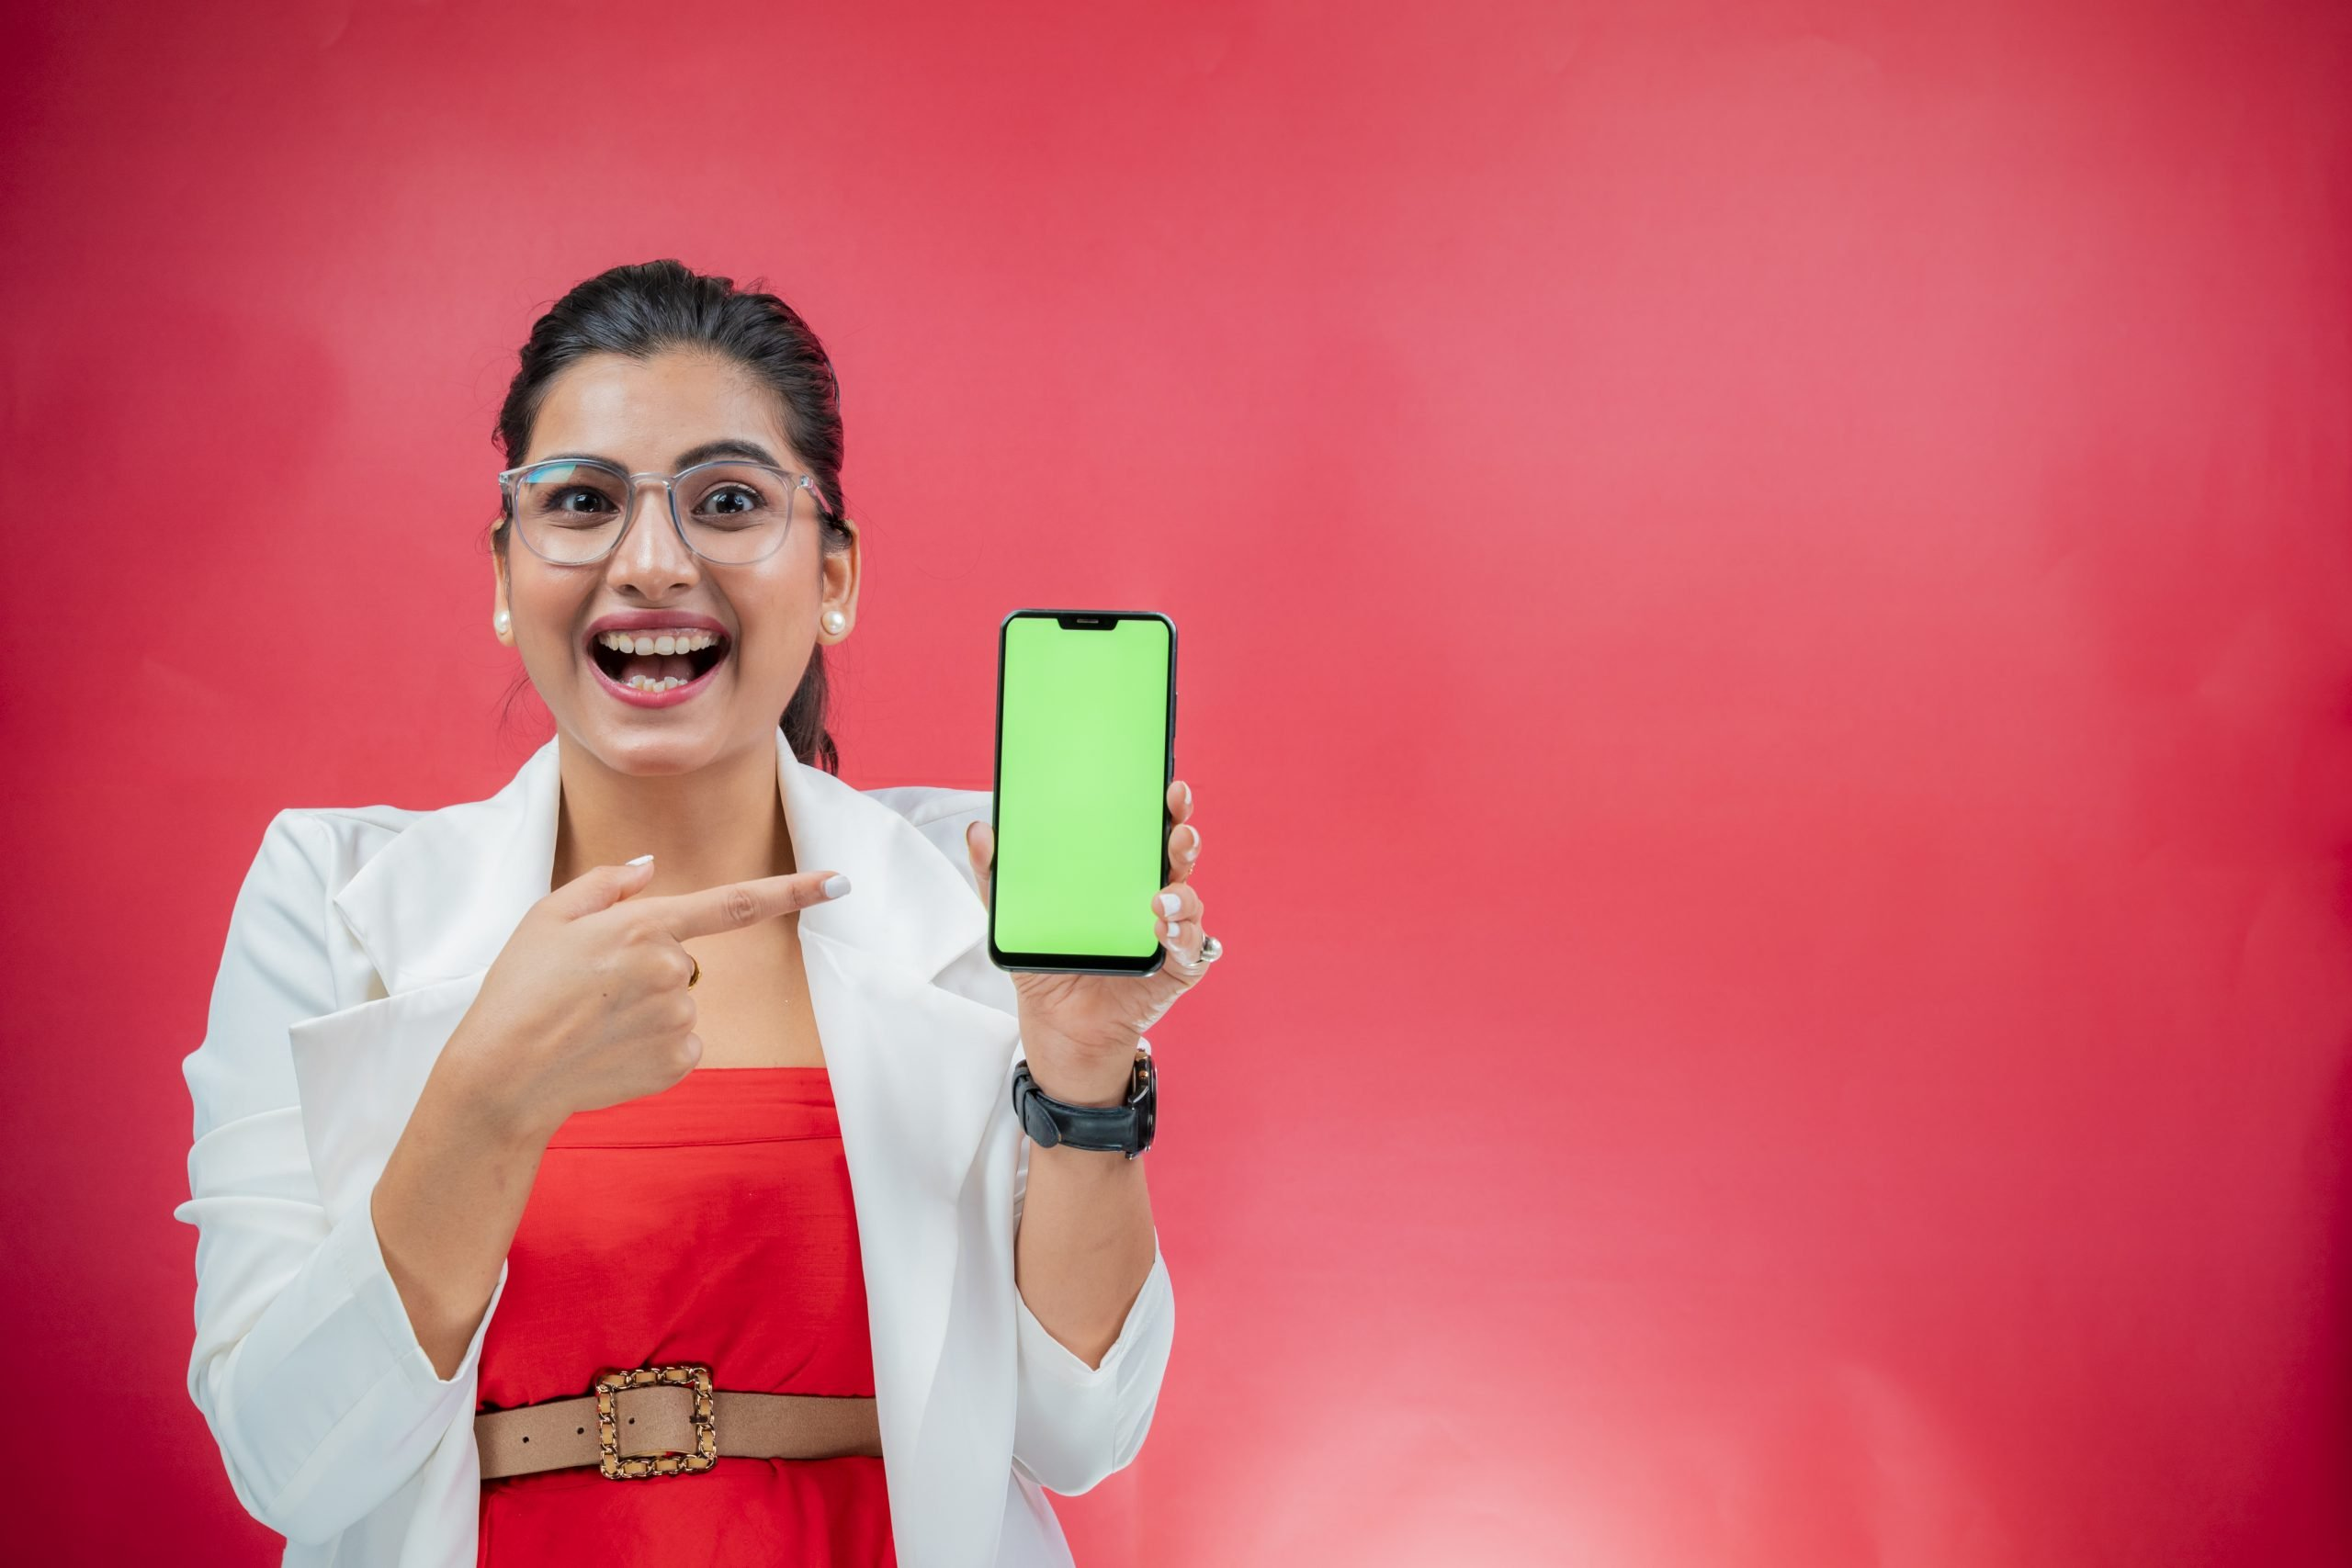 A girl with new phone